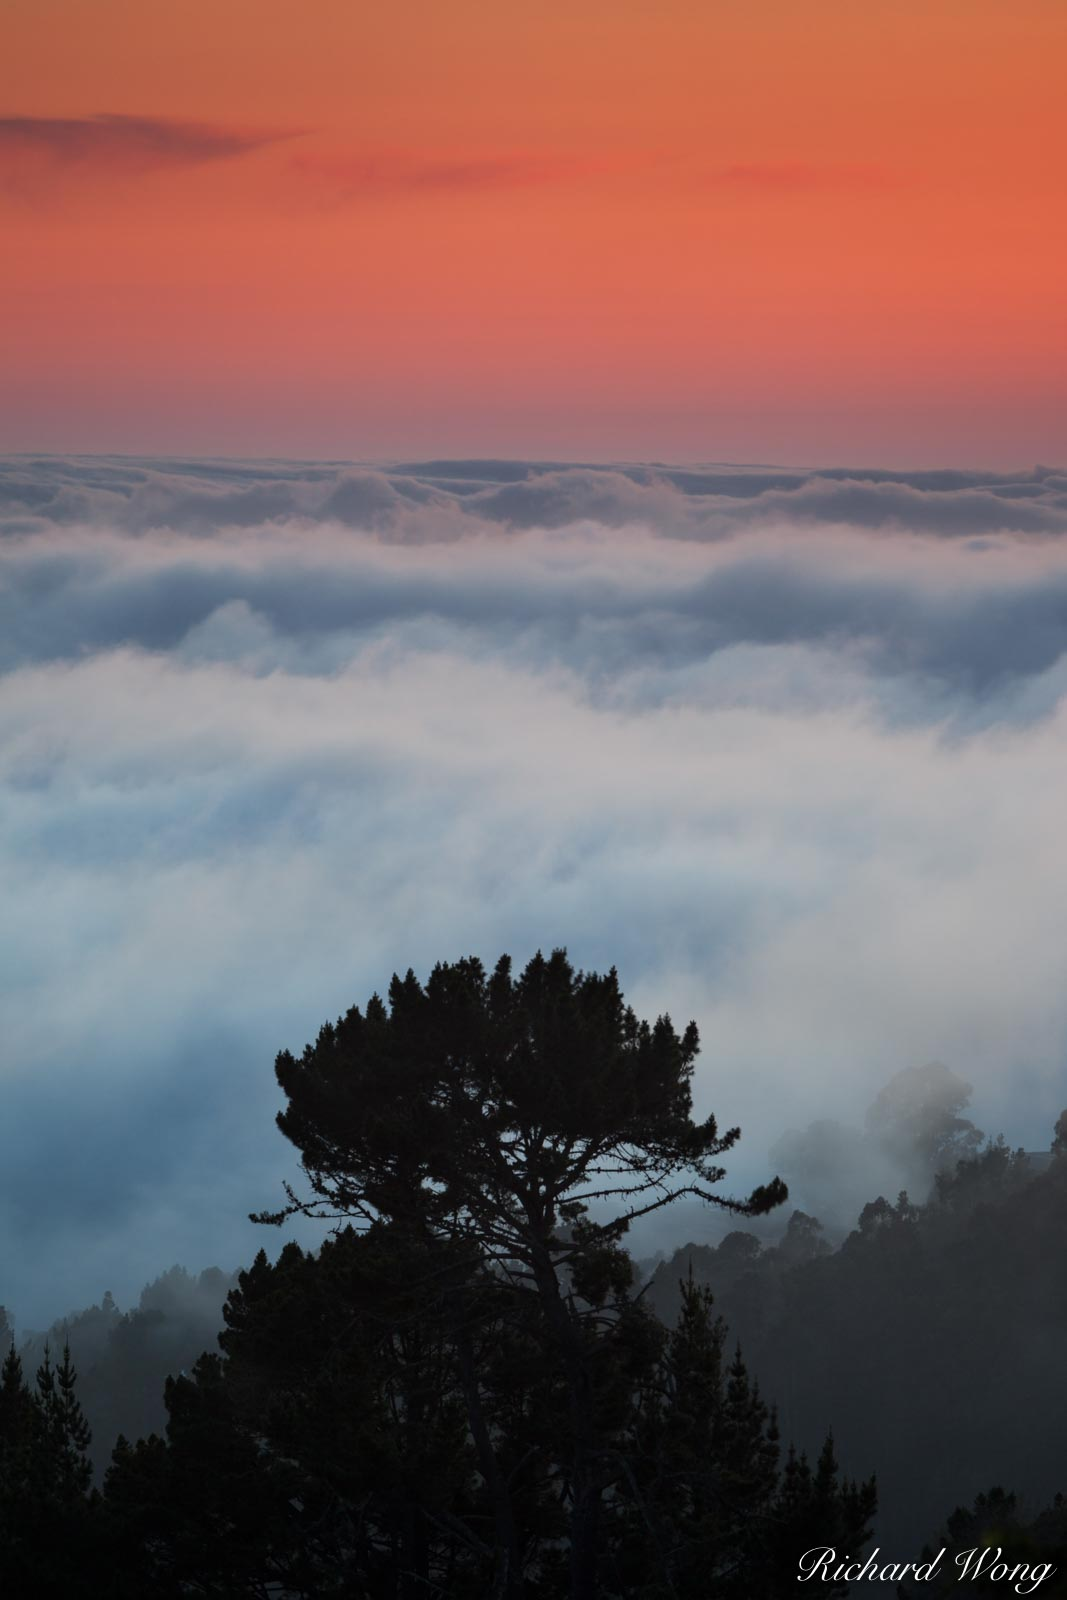 Tree in a Sea of Fog at Sunset, Berkeley, California, photo, photo